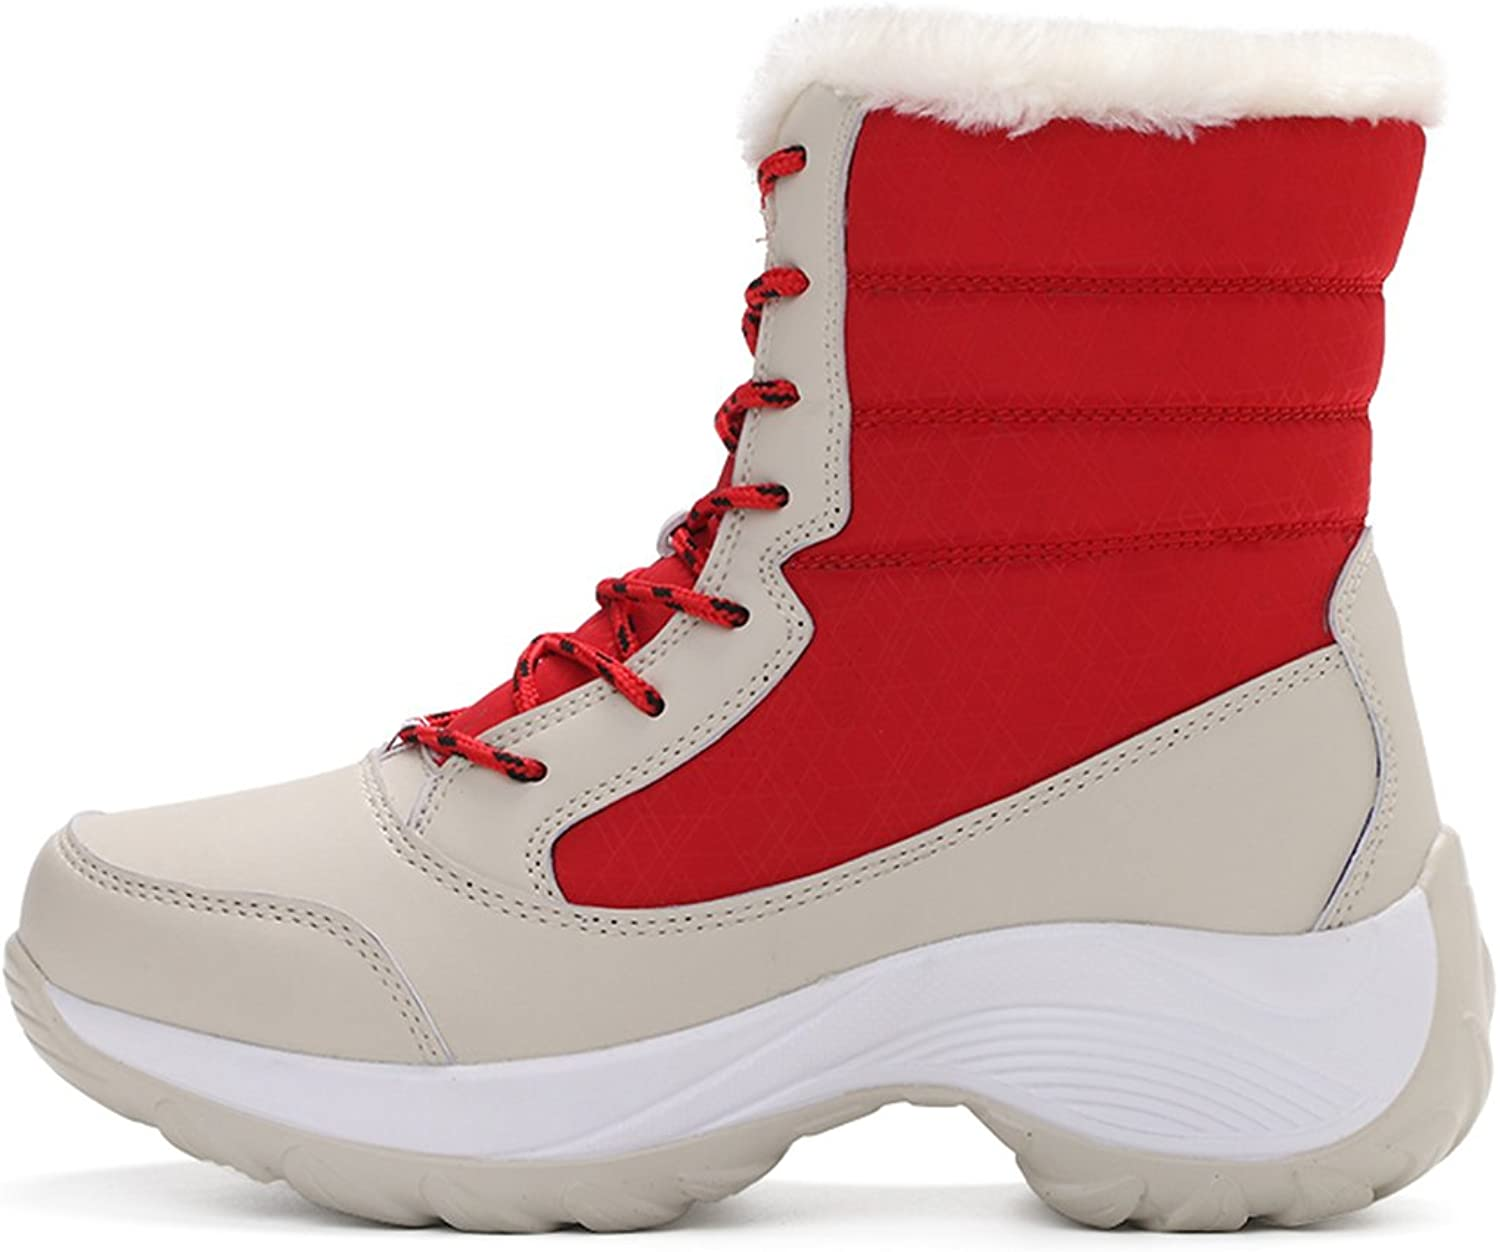 XIAFEN Women's Fashion Combat Lace Up Ankle High Casual Warm Snow Boots